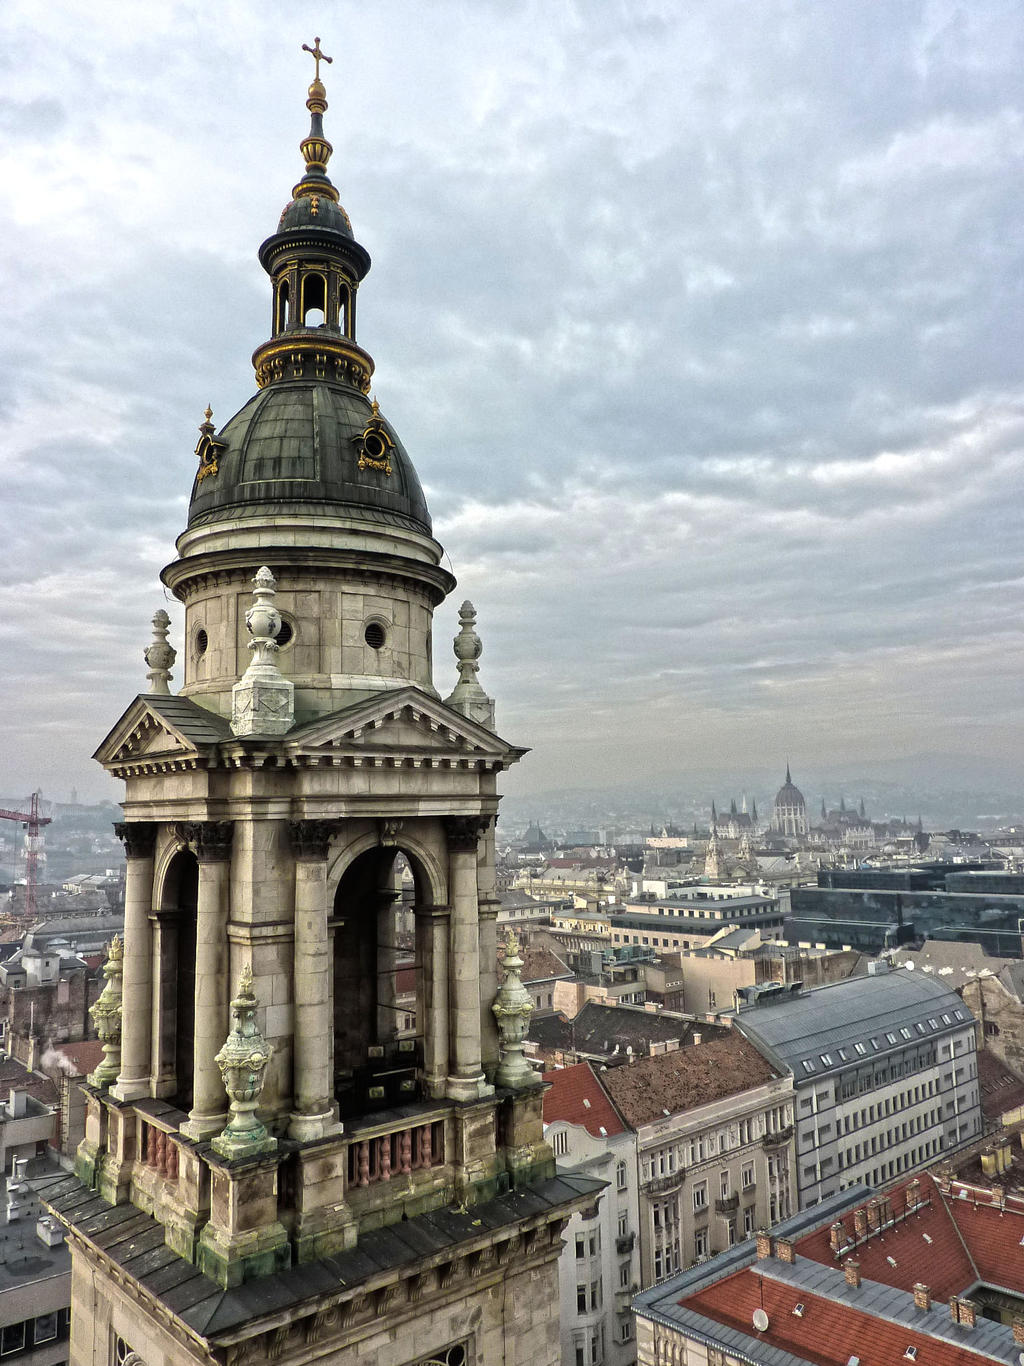 On the roof of the basilica